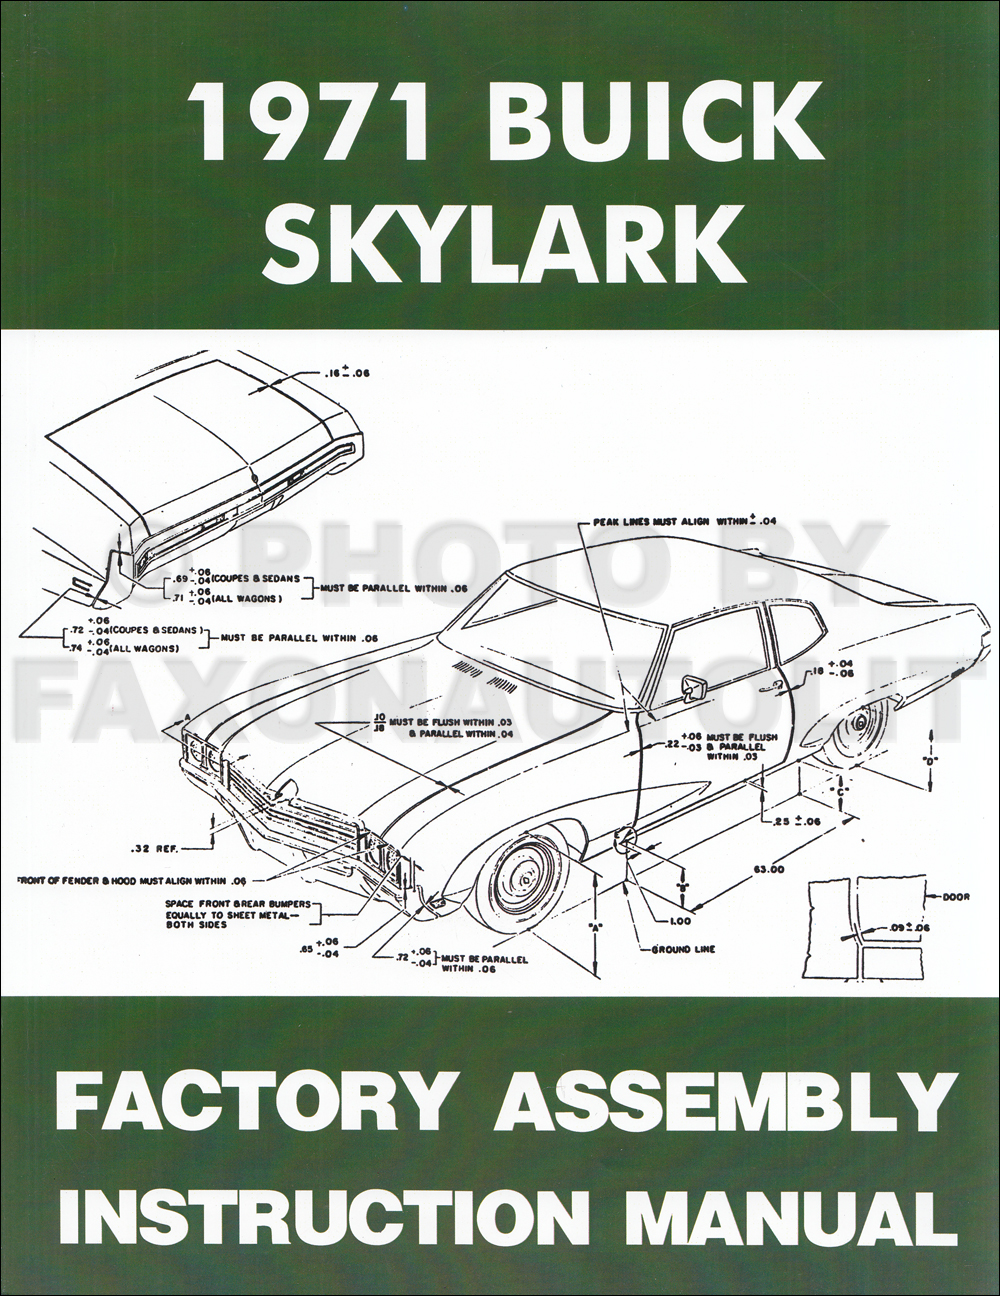 medium resolution of 1971 buick assembly manual reprint skylark gran sport gs sportwagon 1969 buick gs 1971 buick gs wiring diagram